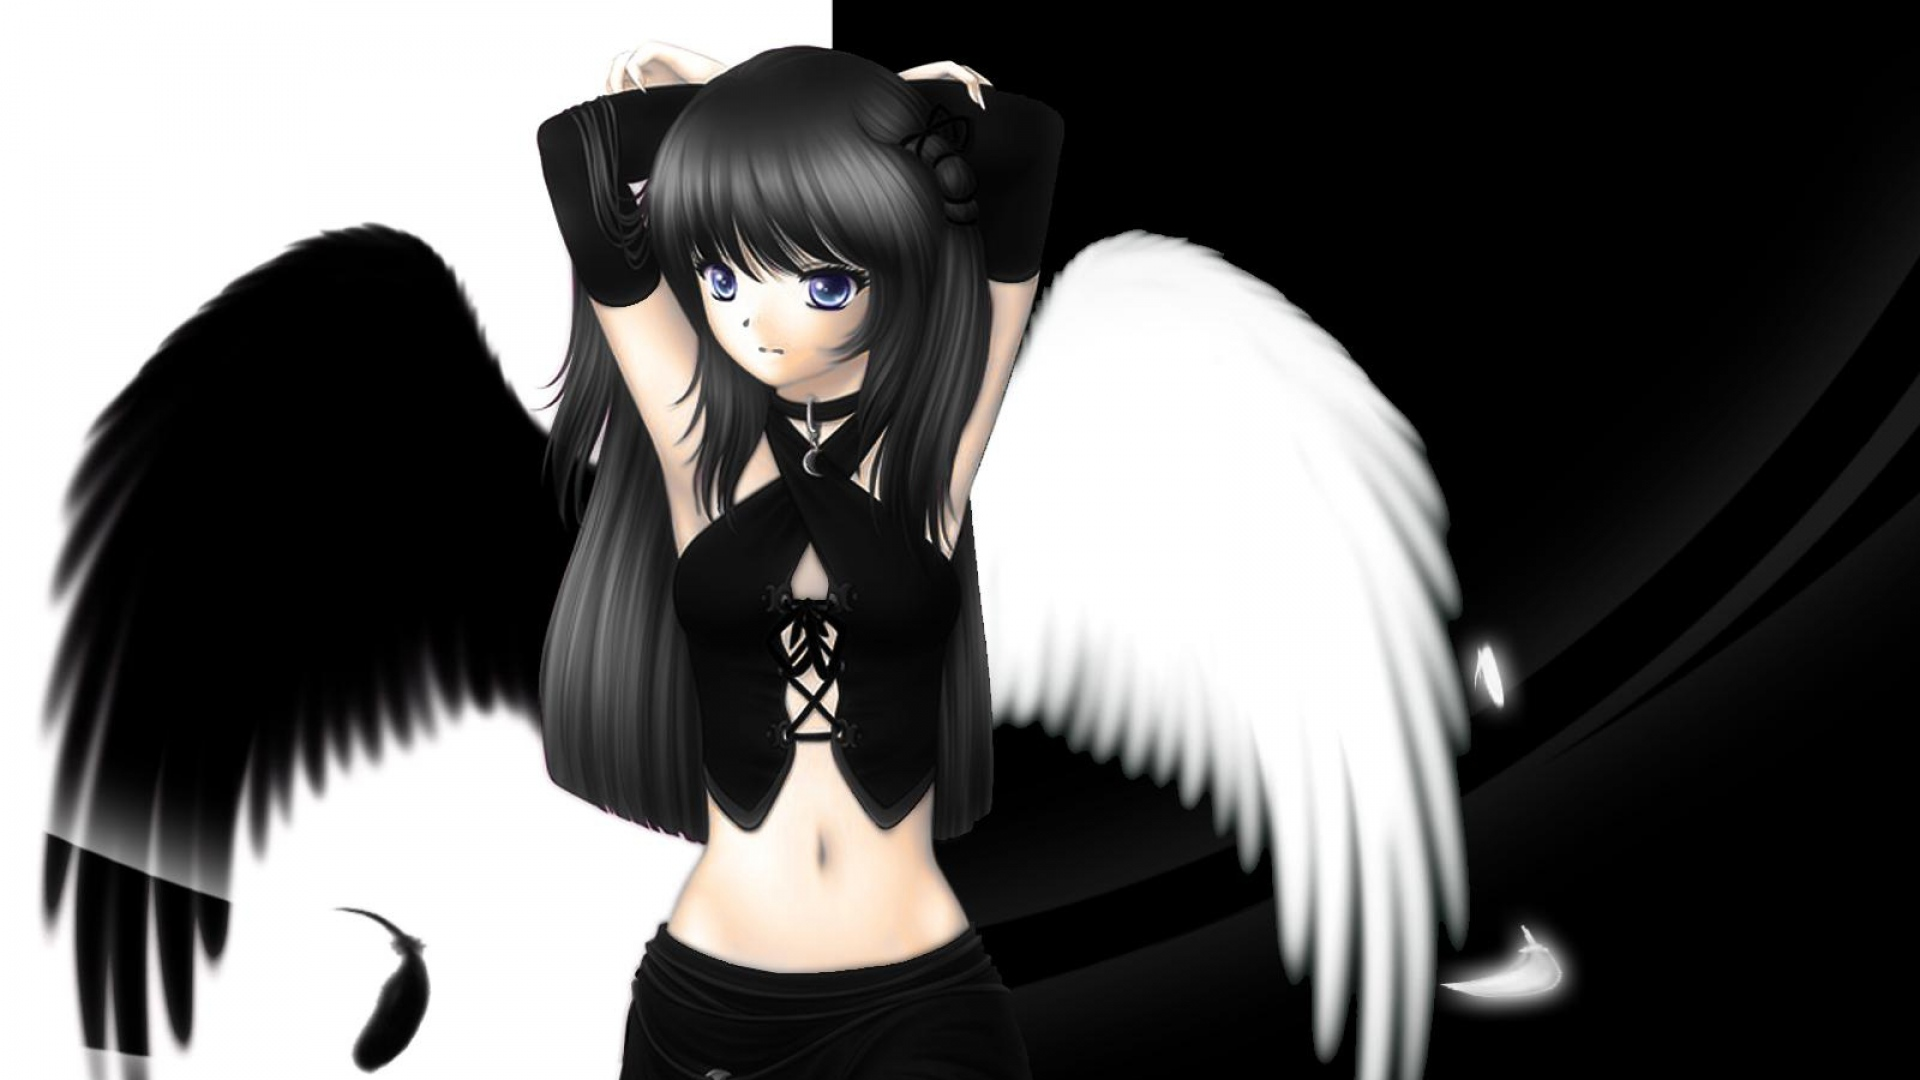 Download Wallpaper 1920x1080 Girl Black White Wings Angel Full Hd 1080p Hd Background